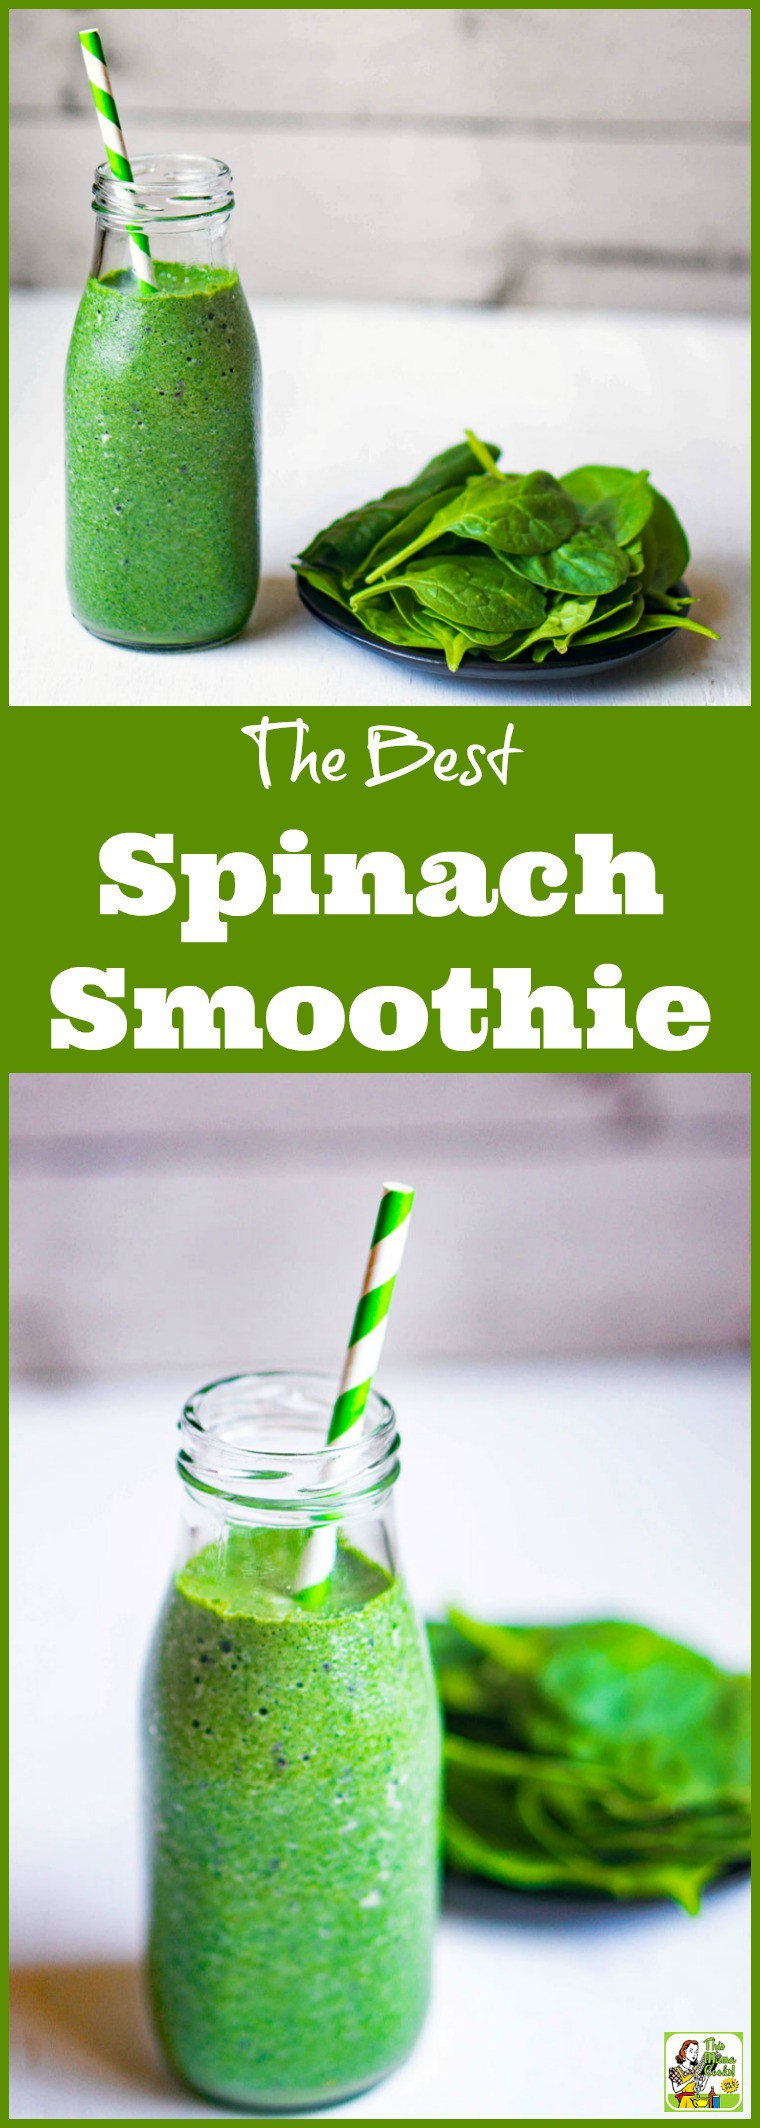 Diet Smoothie Recipes  How to Make the Best Spinach Smoothie Recipes